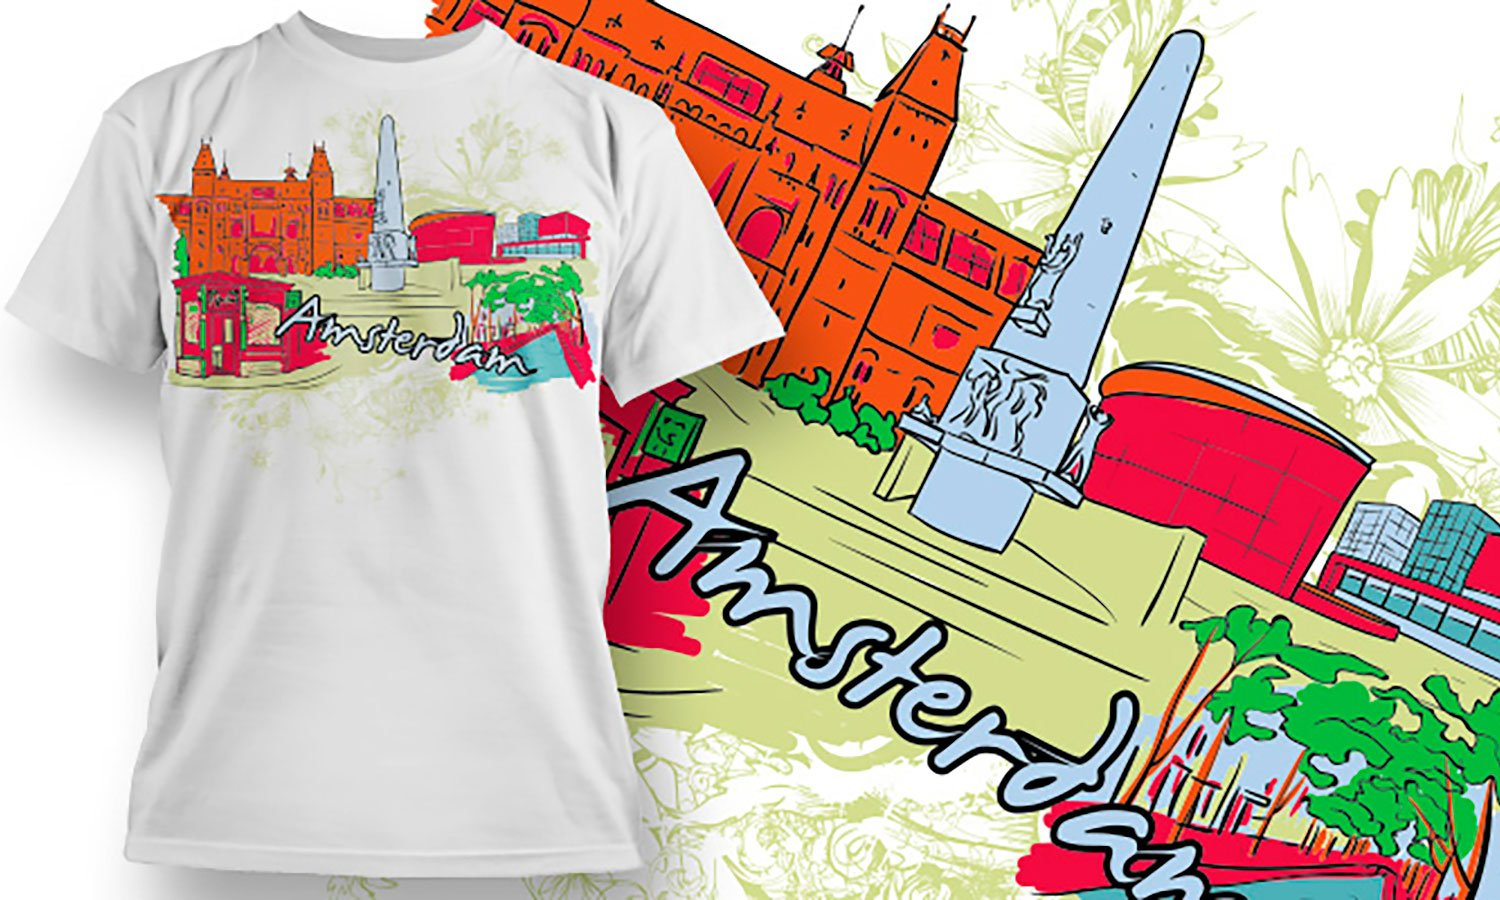 Amsterdam - Printed T-Shirt for Men, Women and Kids - TS120